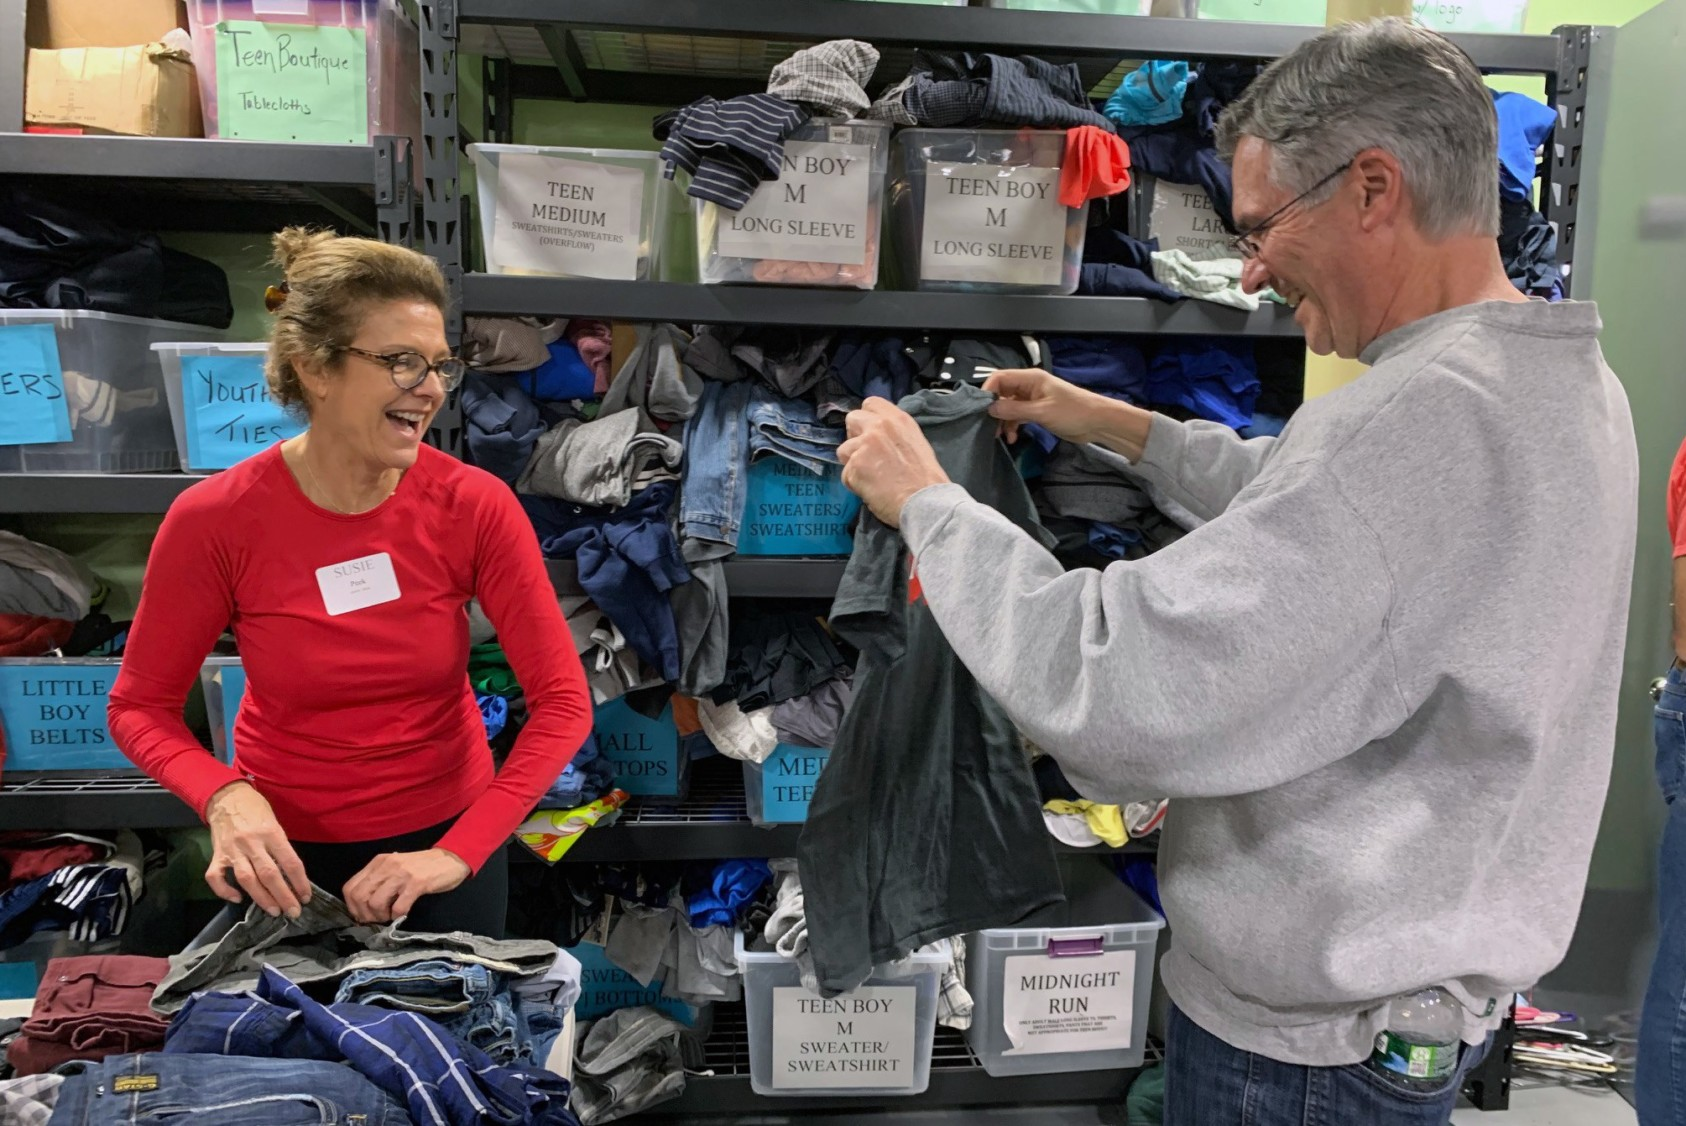 Cornell Alumni Association of Westchester volunteers sort donations of new and gently used clothing, shoes, and coats.